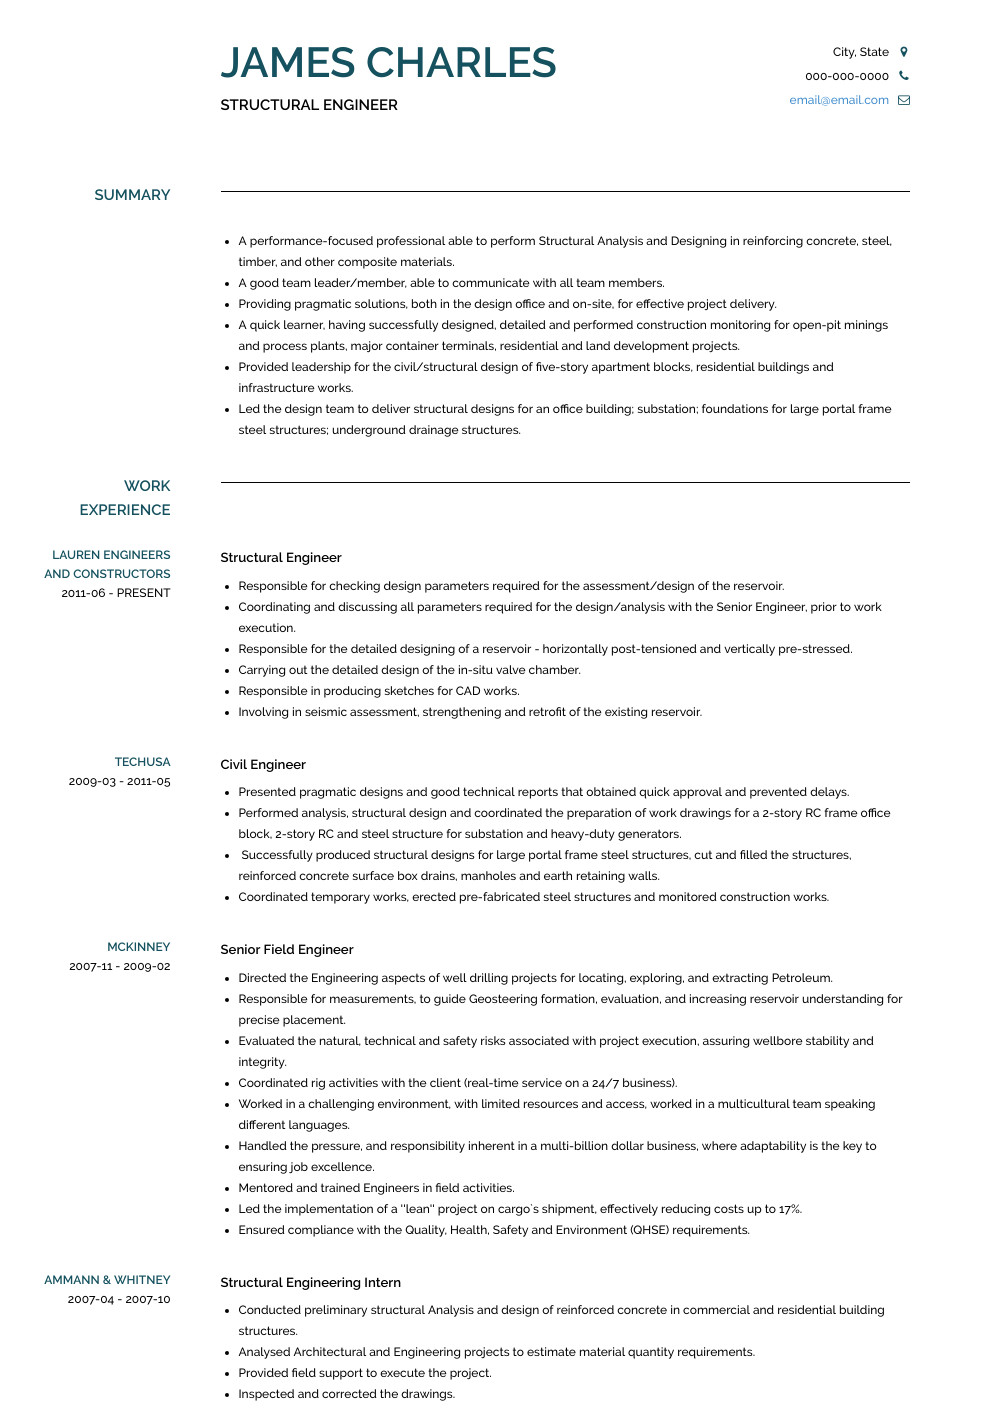 Structural Engineer Resume Structural Engineer Resume Samples and Templates Visualcv